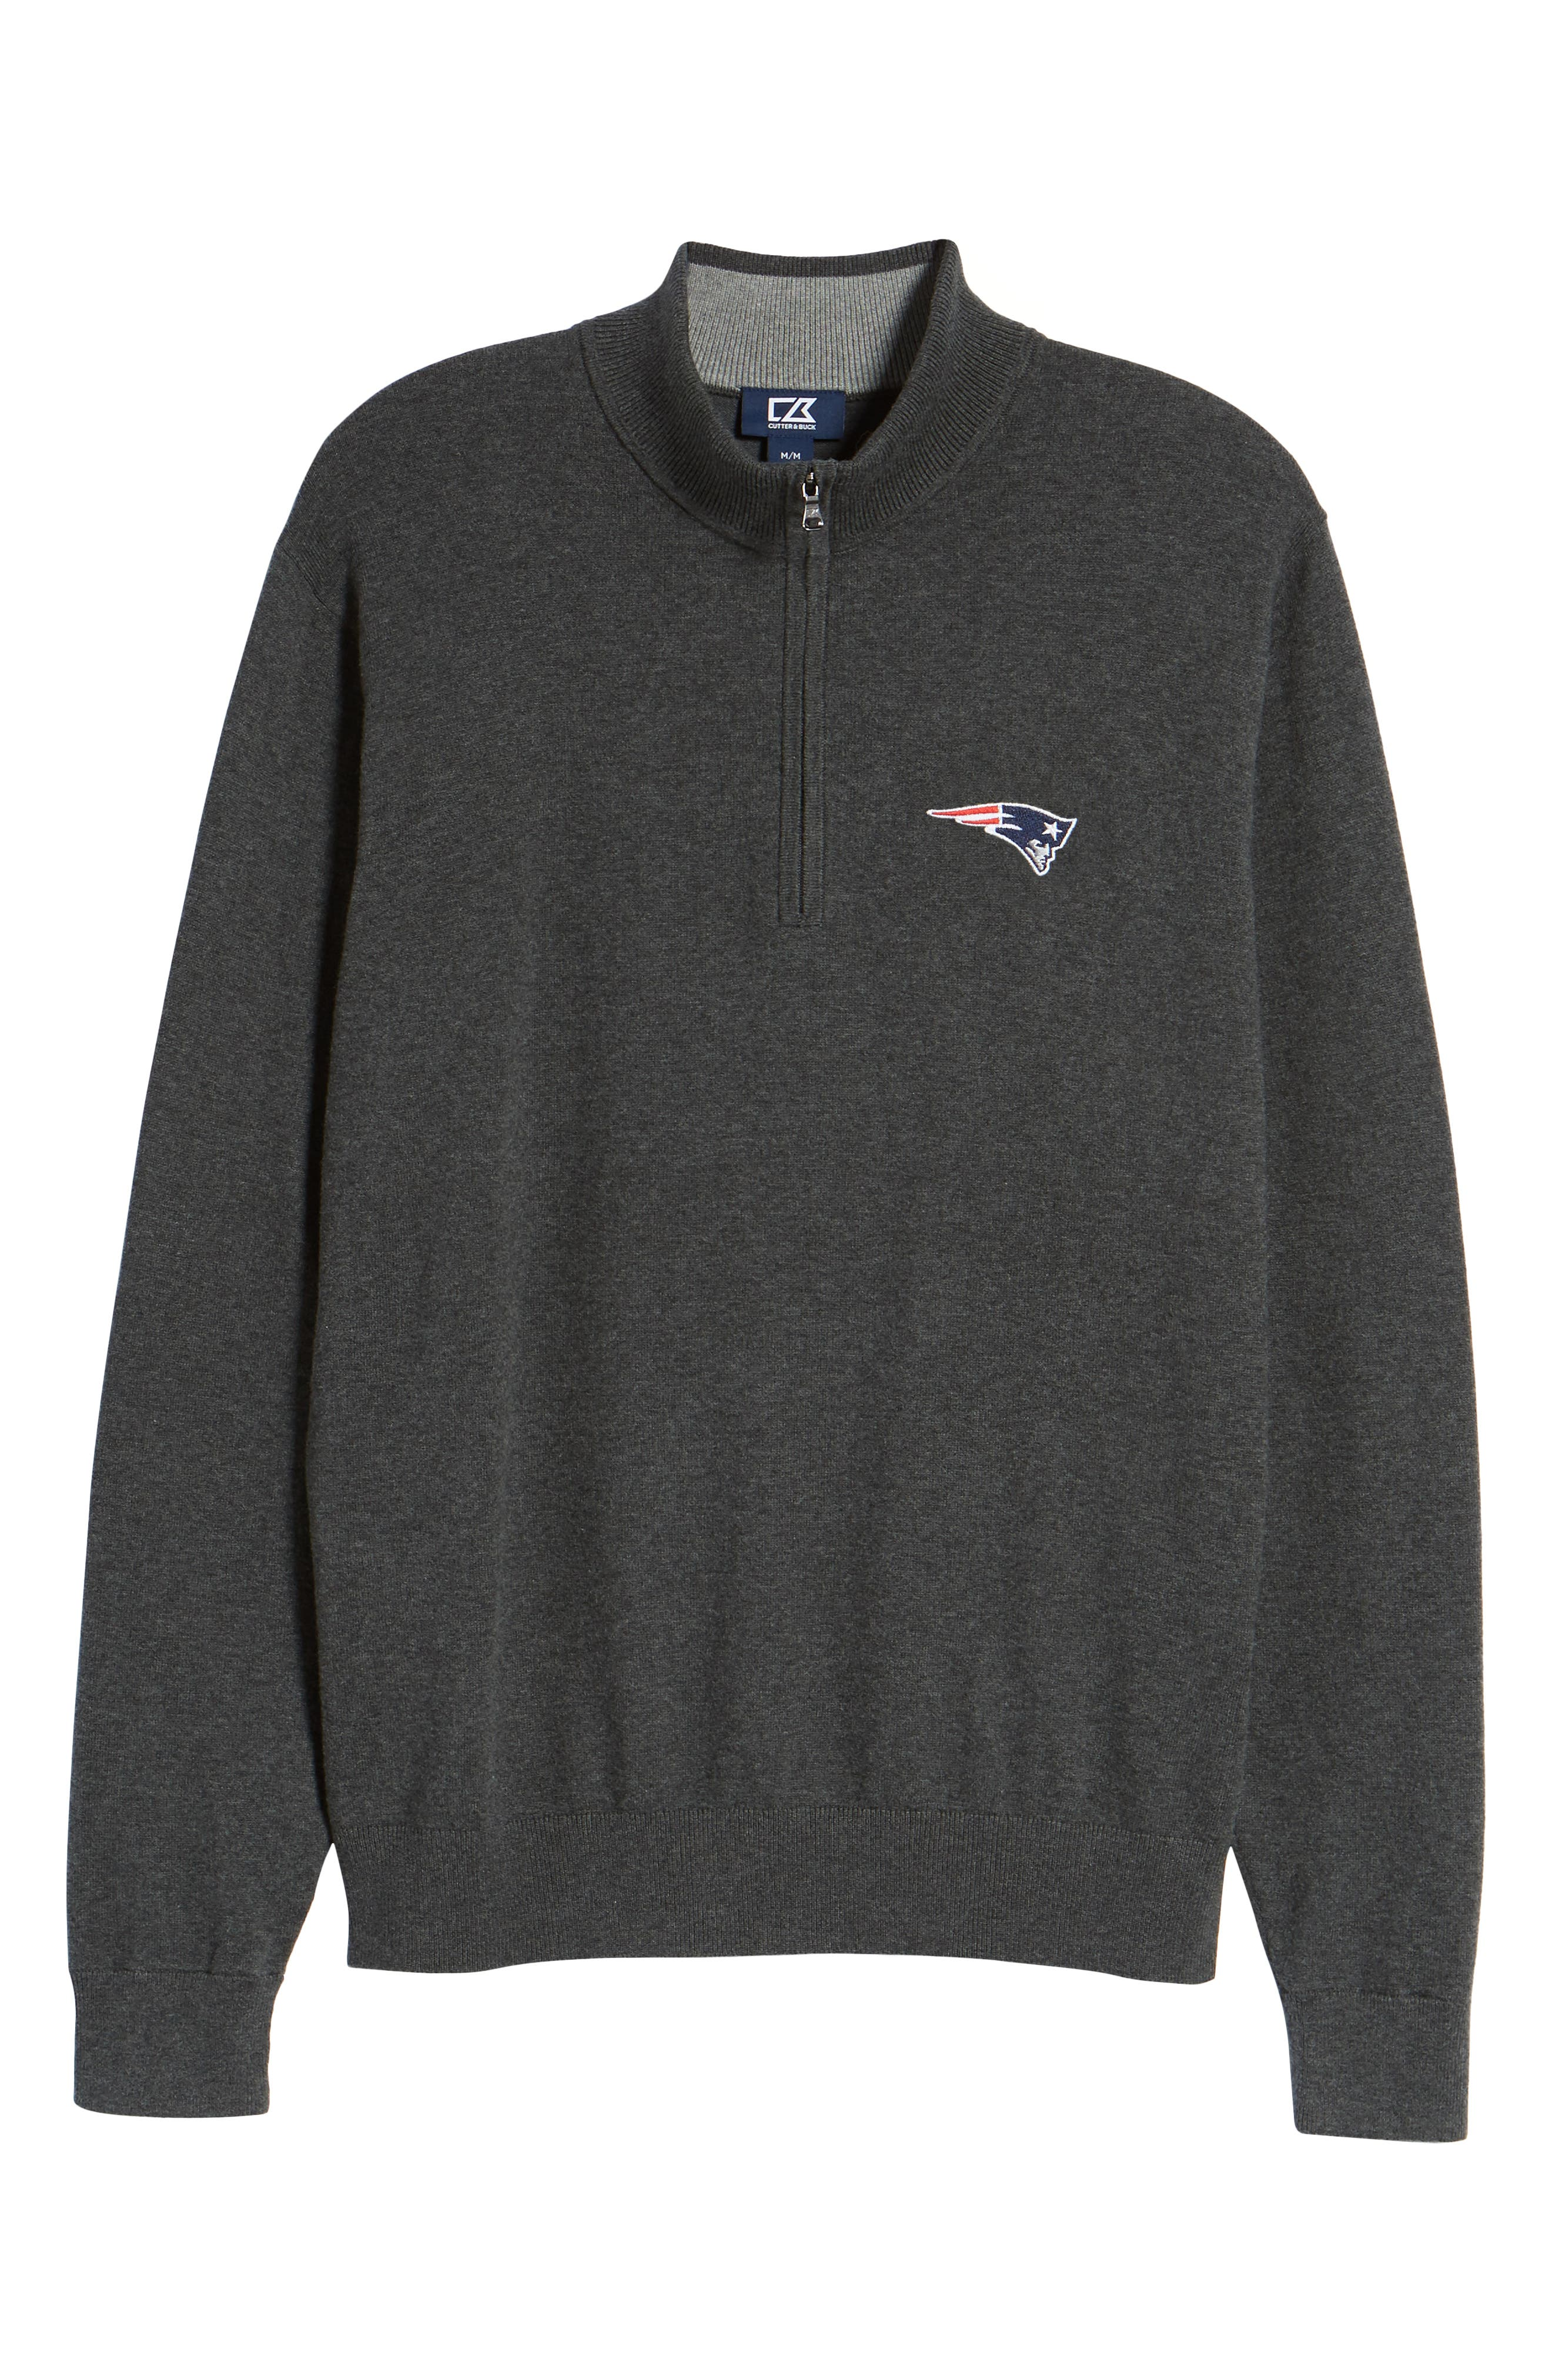 New England Patriots - Lakemont Regular Fit Quarter Zip Sweater,                             Alternate thumbnail 6, color,                             CHARCOAL HEATHER